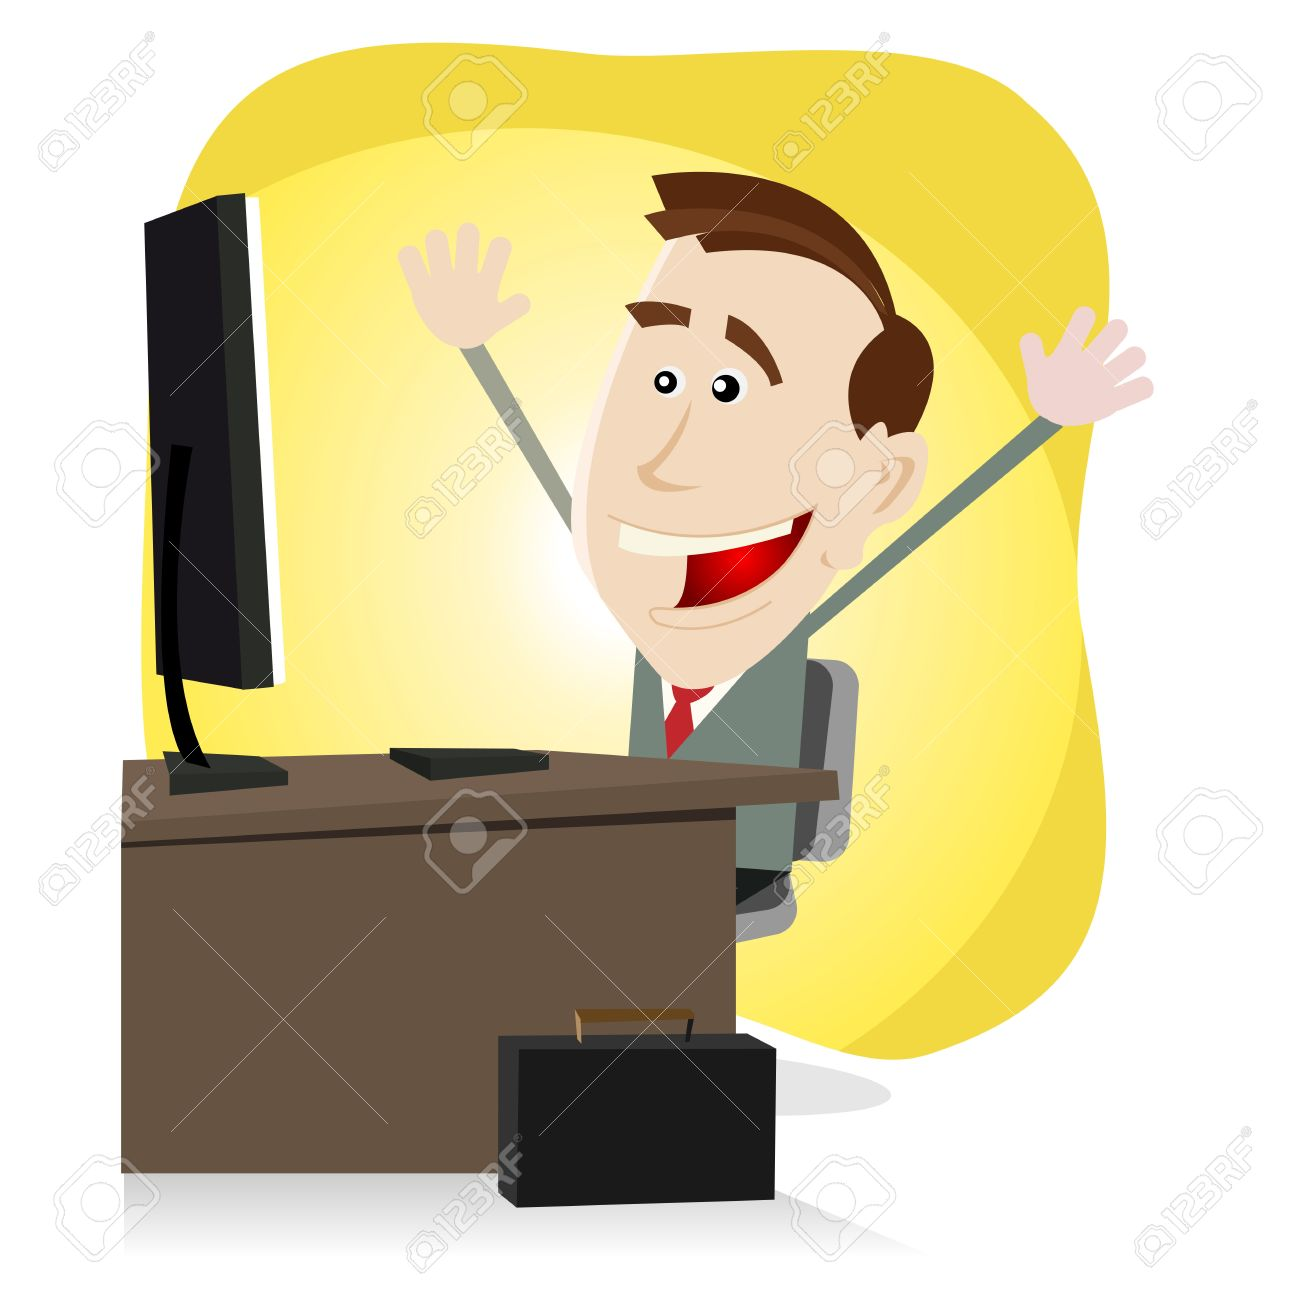 Illustration of a cartoon happy business man finding happiness on the web or on his Desktop Computer Stock Vector - 11248659